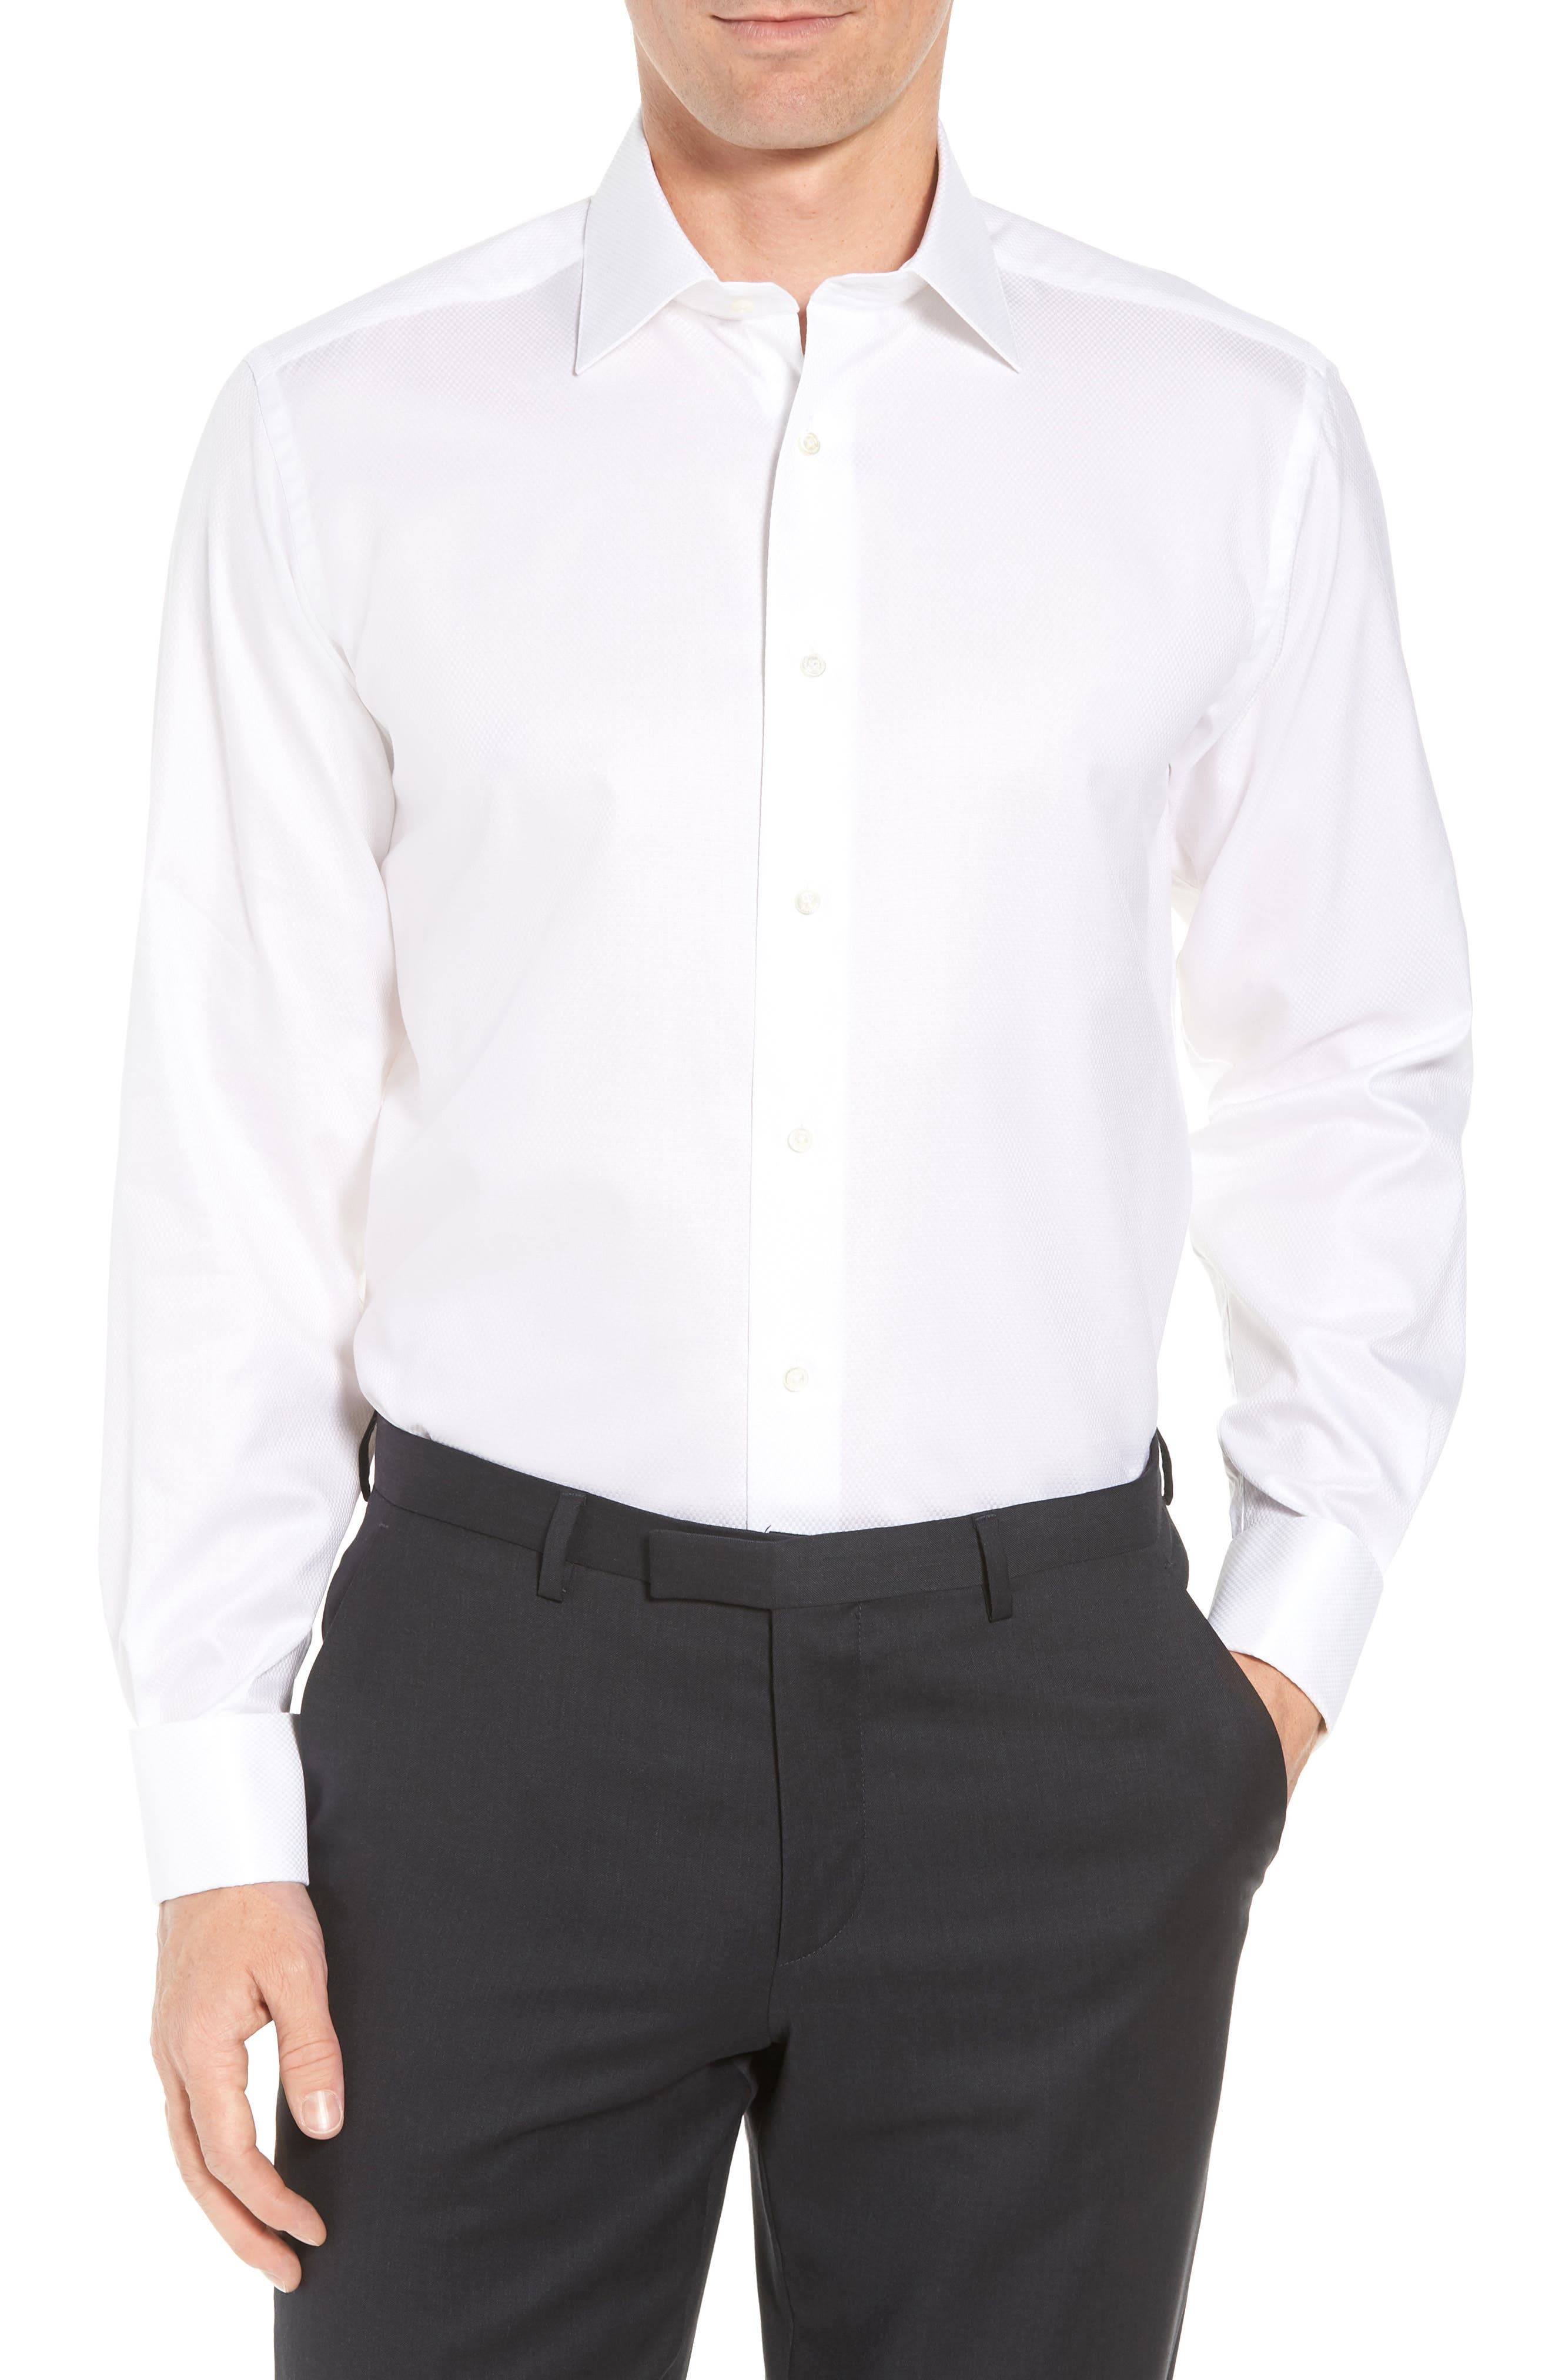 Alternate Image 1 Selected - David Donahue Regular Fit Solid French Cuff Tuxedo Shirt